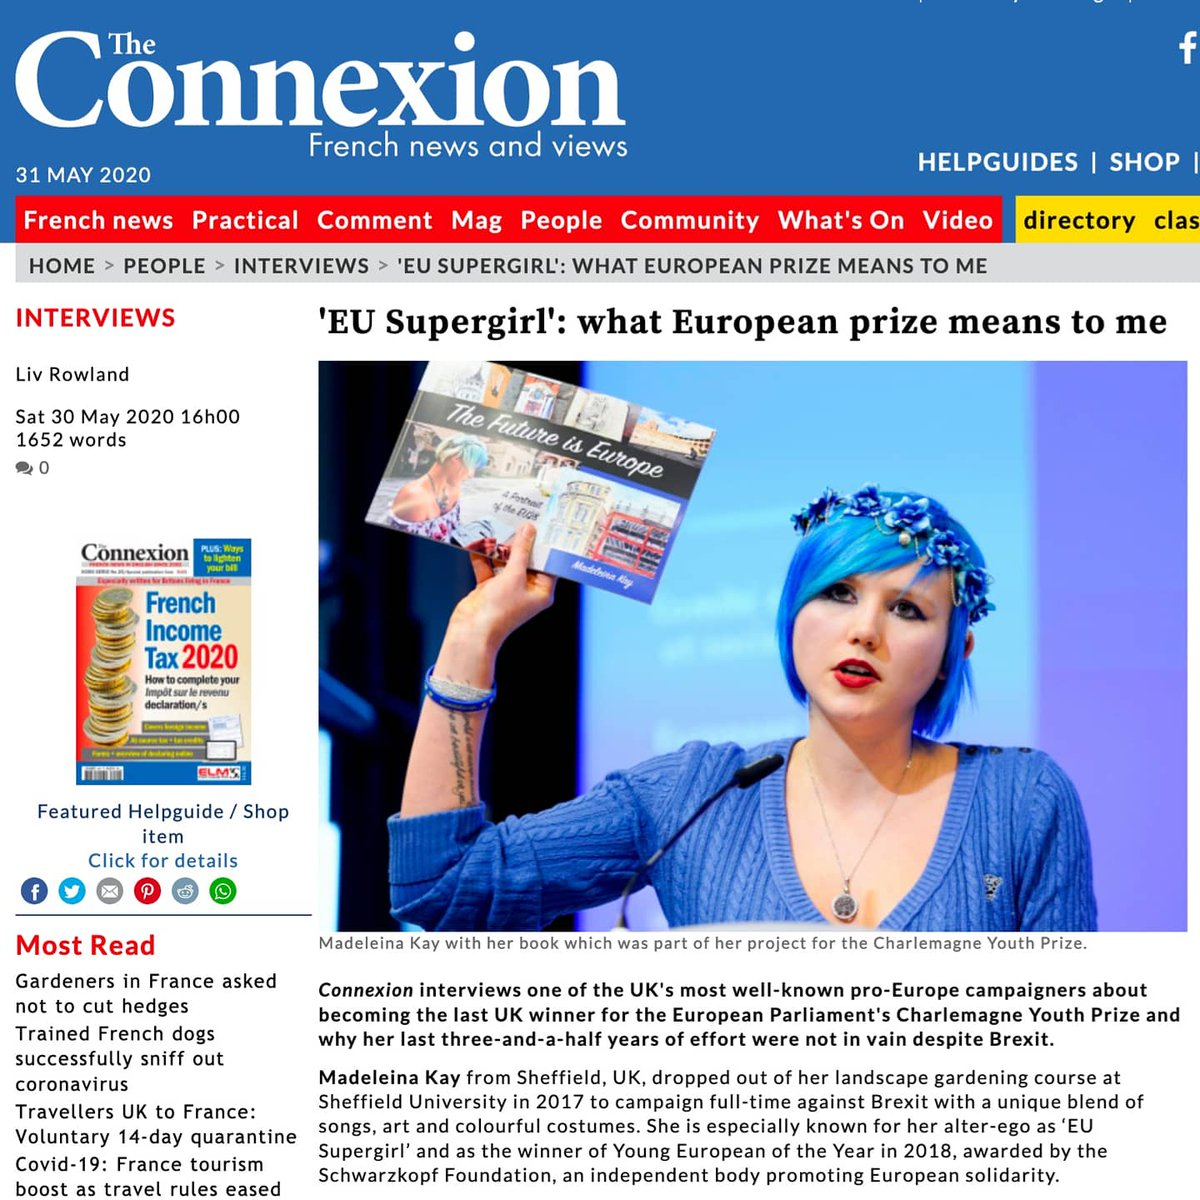 My interview for @ConnexionFrance magazine... about being awarded the UK #CharlemagneYouthPrize and why the last 4 years havent been a wasted effort 🇪🇺🇫🇷🇬🇧✊🏻 #LoveEurope #TheFutureisEurope connexionfrance.com/People/Intervi…